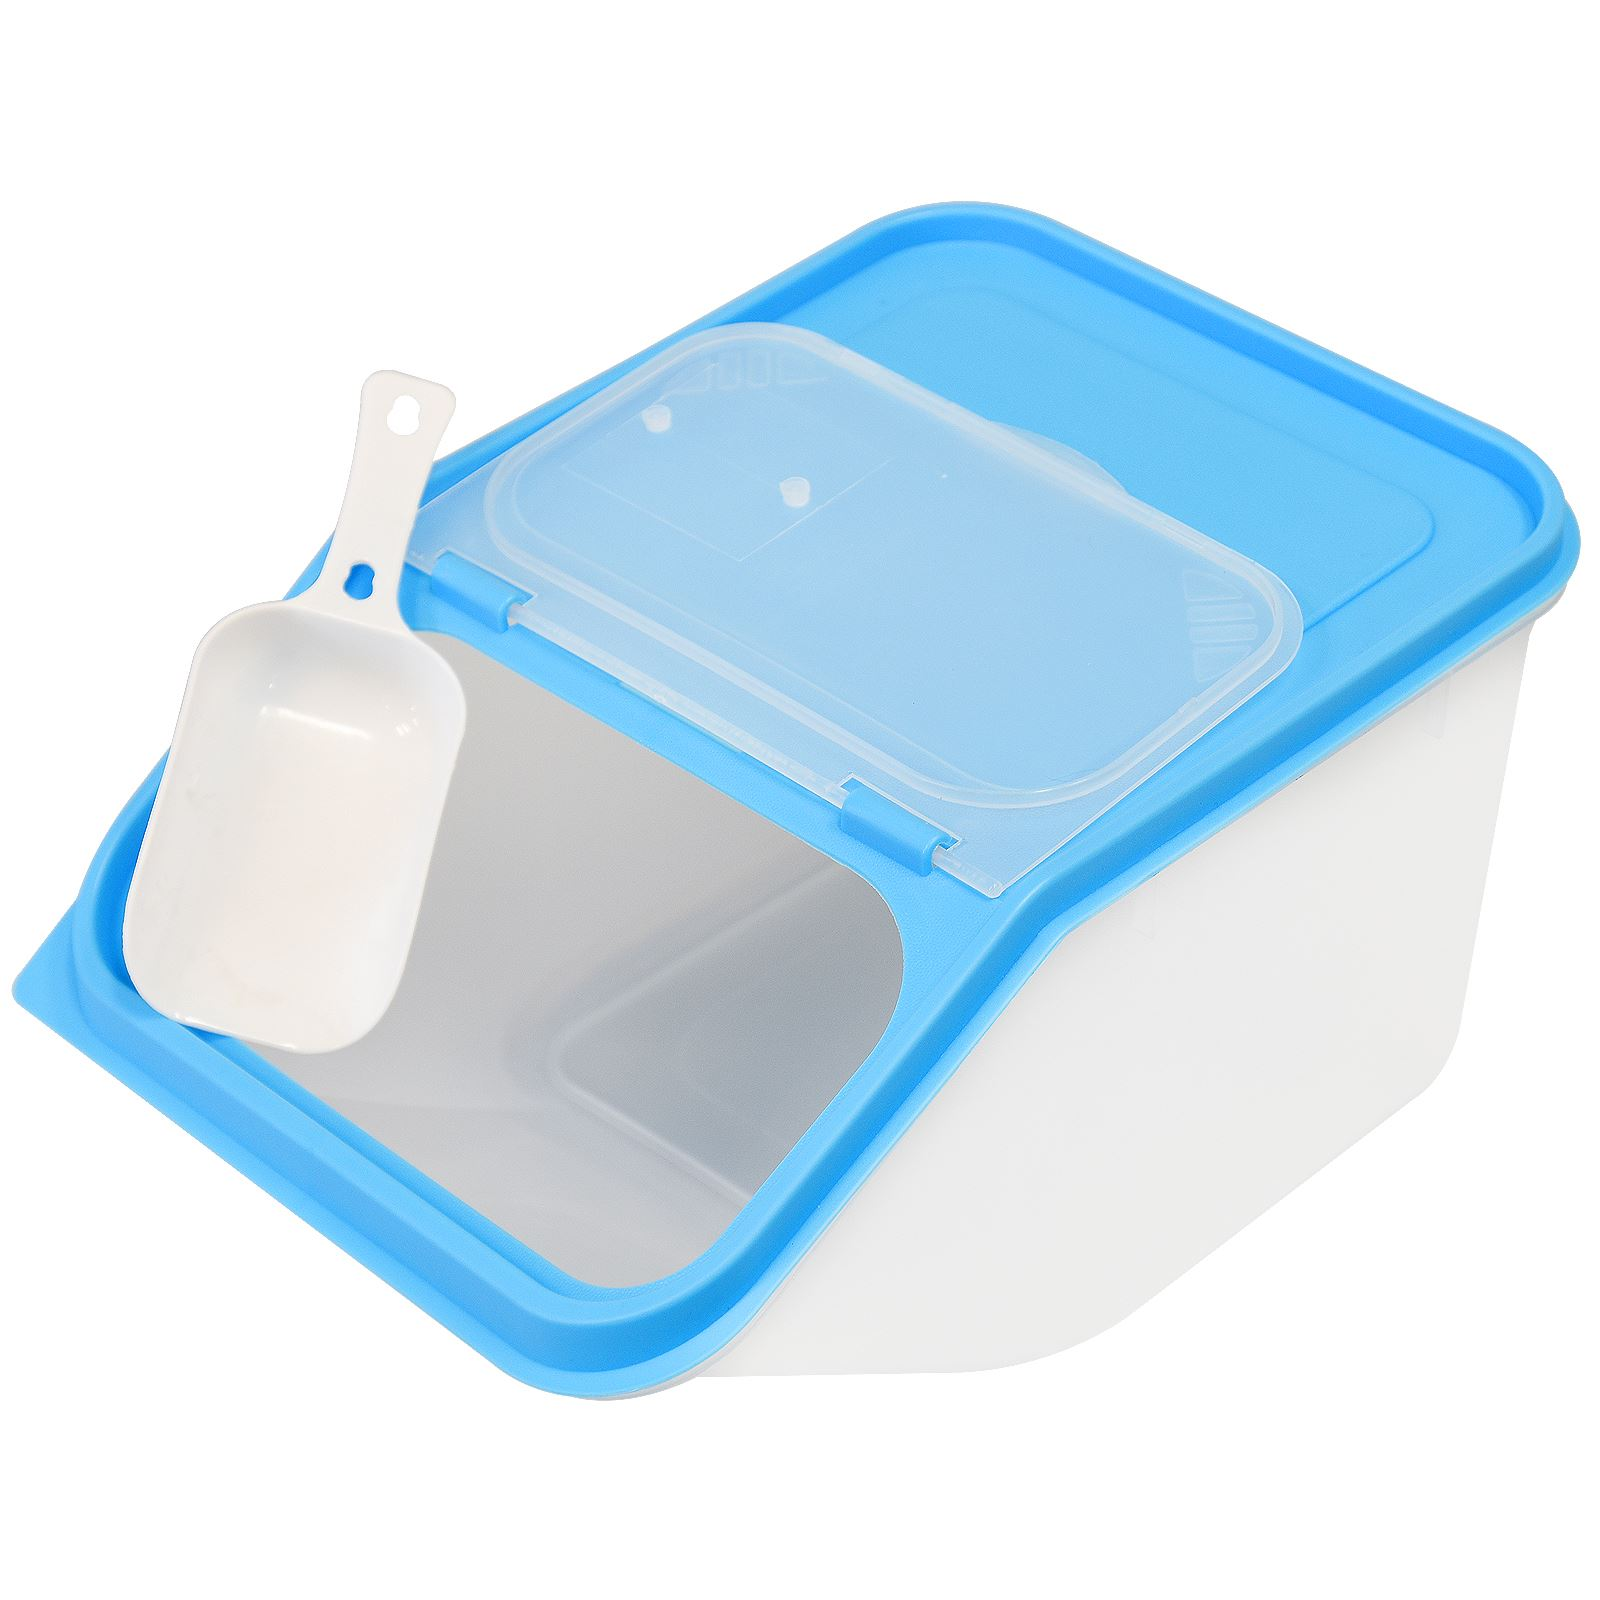 ... Picture 2 of 3 ...  sc 1 st  eBay & 3.5l Large Dry Food Storage Container Plastic Scoop Cereal Dispenser ...